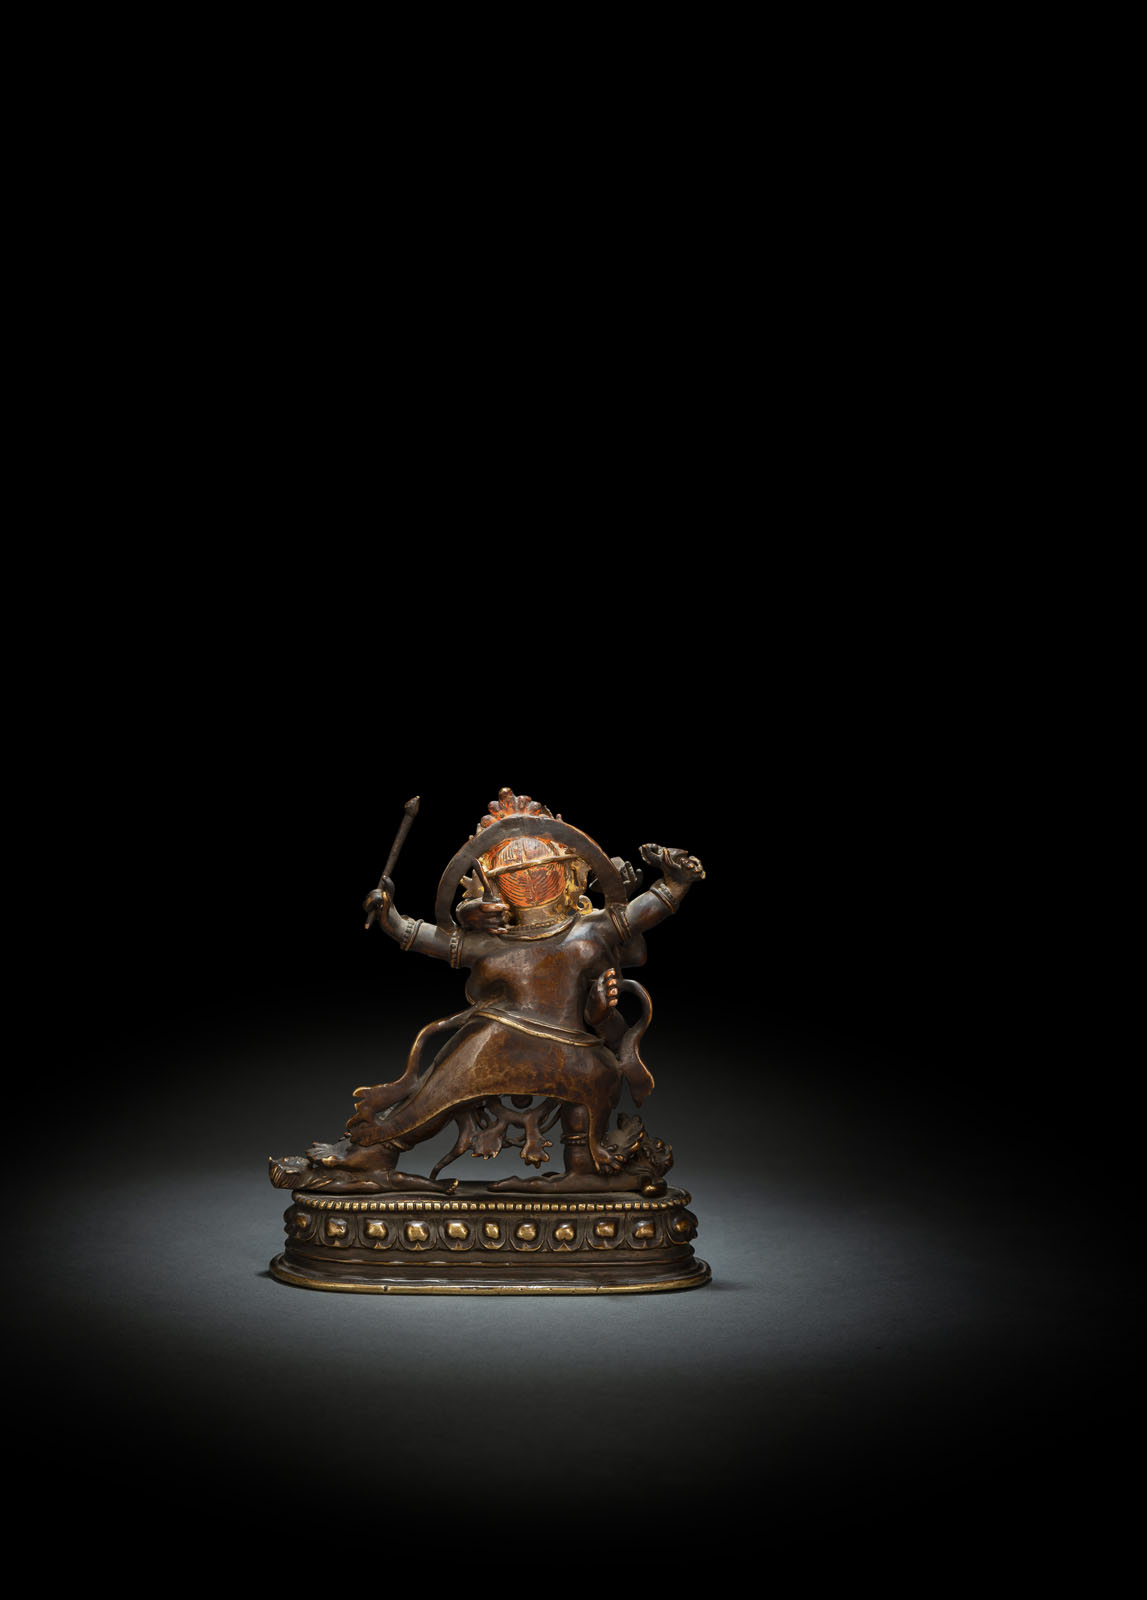 A RARE BRONZE EMANATION OF VAJRAPANI ON A LOTUS - Image 2 of 10